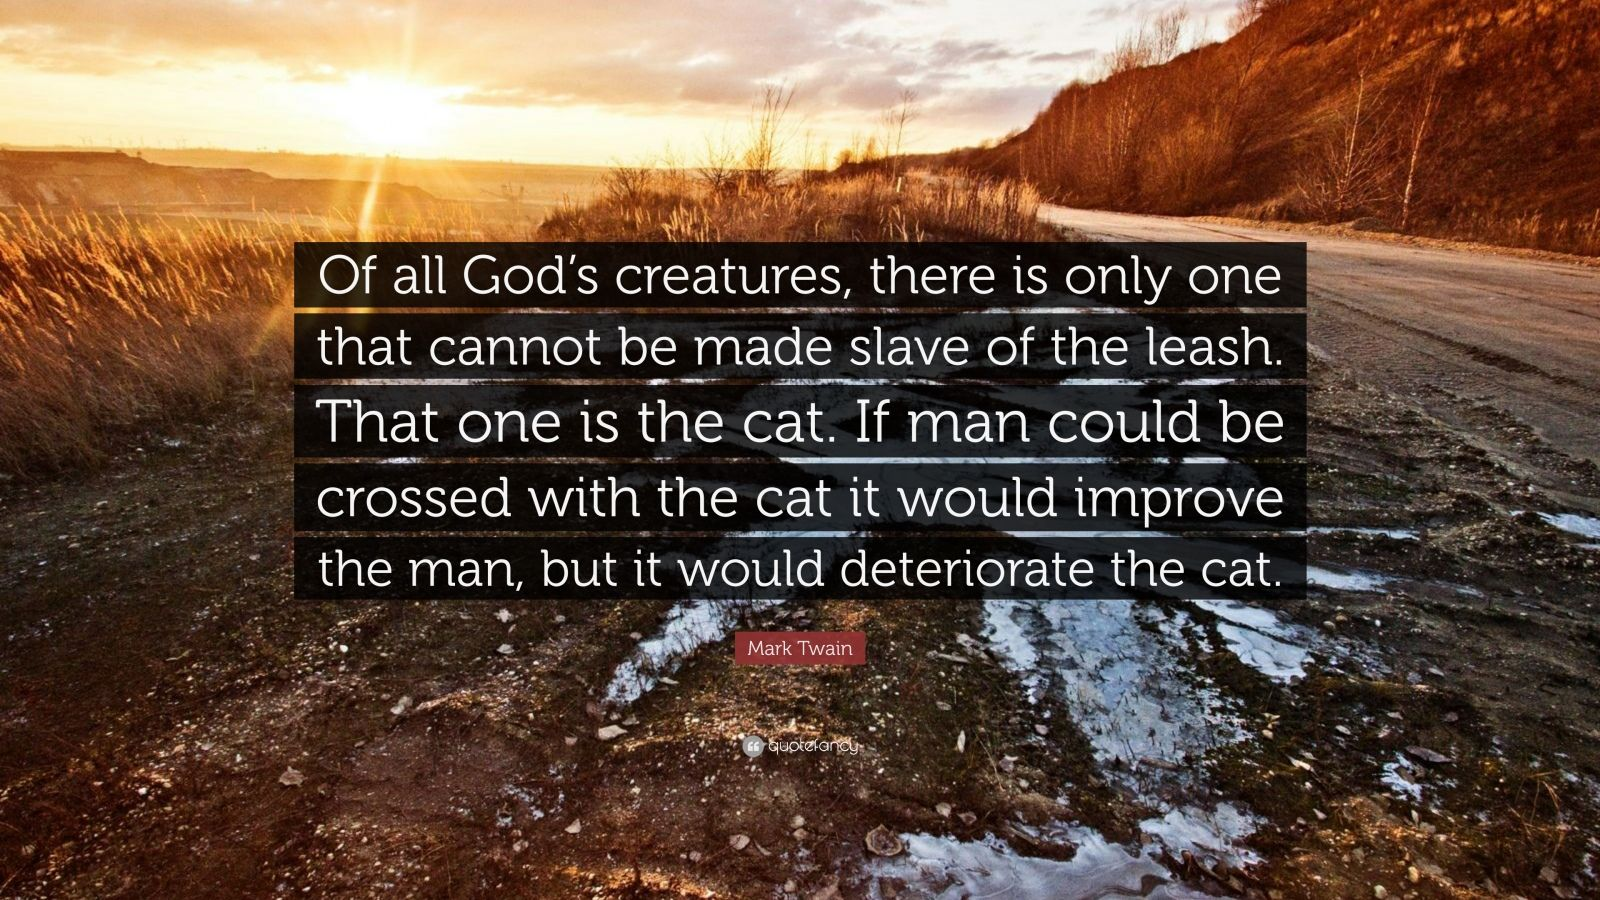 "Mark Twain Quote: ""Of all God's creatures, there is only one that cannot be made slave of the leash. That one is the cat. If man could be crossed with the cat it would improve the man, but it would deteriorate the cat."""